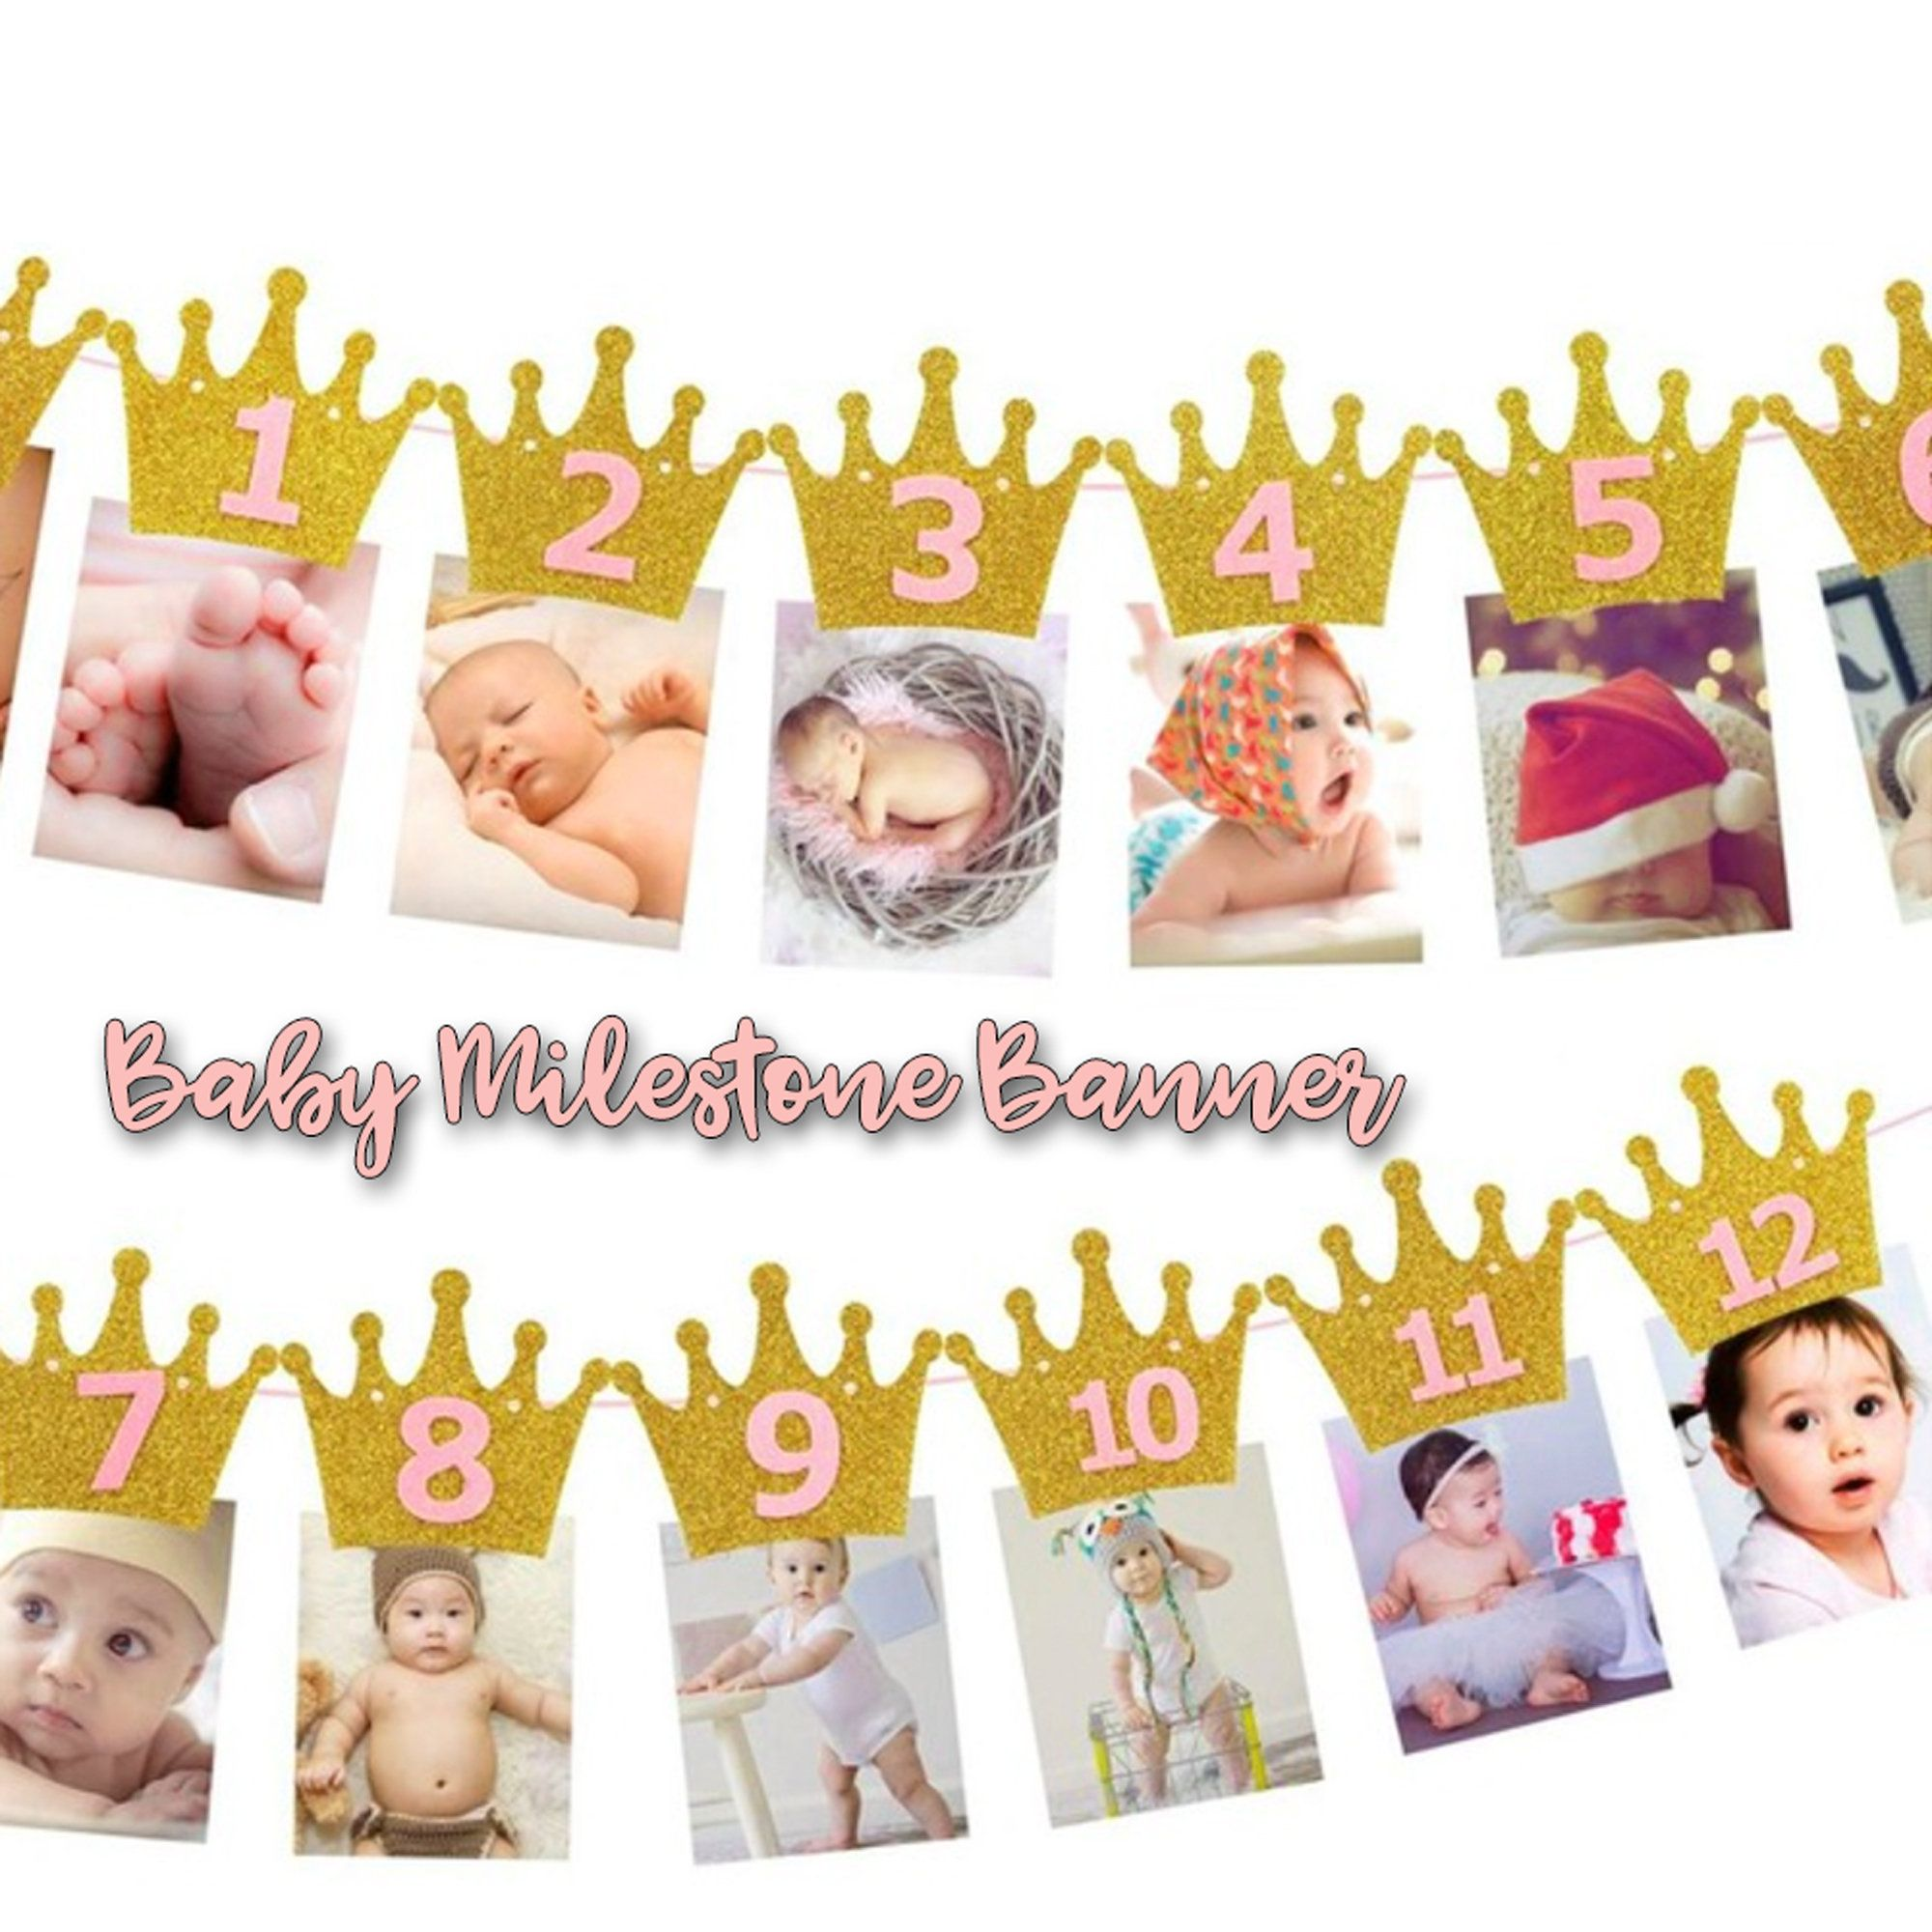 Birthday Banner First Year Photo Banner 1st Birthday Photo Etsy In 2020 Birthday Photo Banner First Birthday Banners Baby Birthday Banner